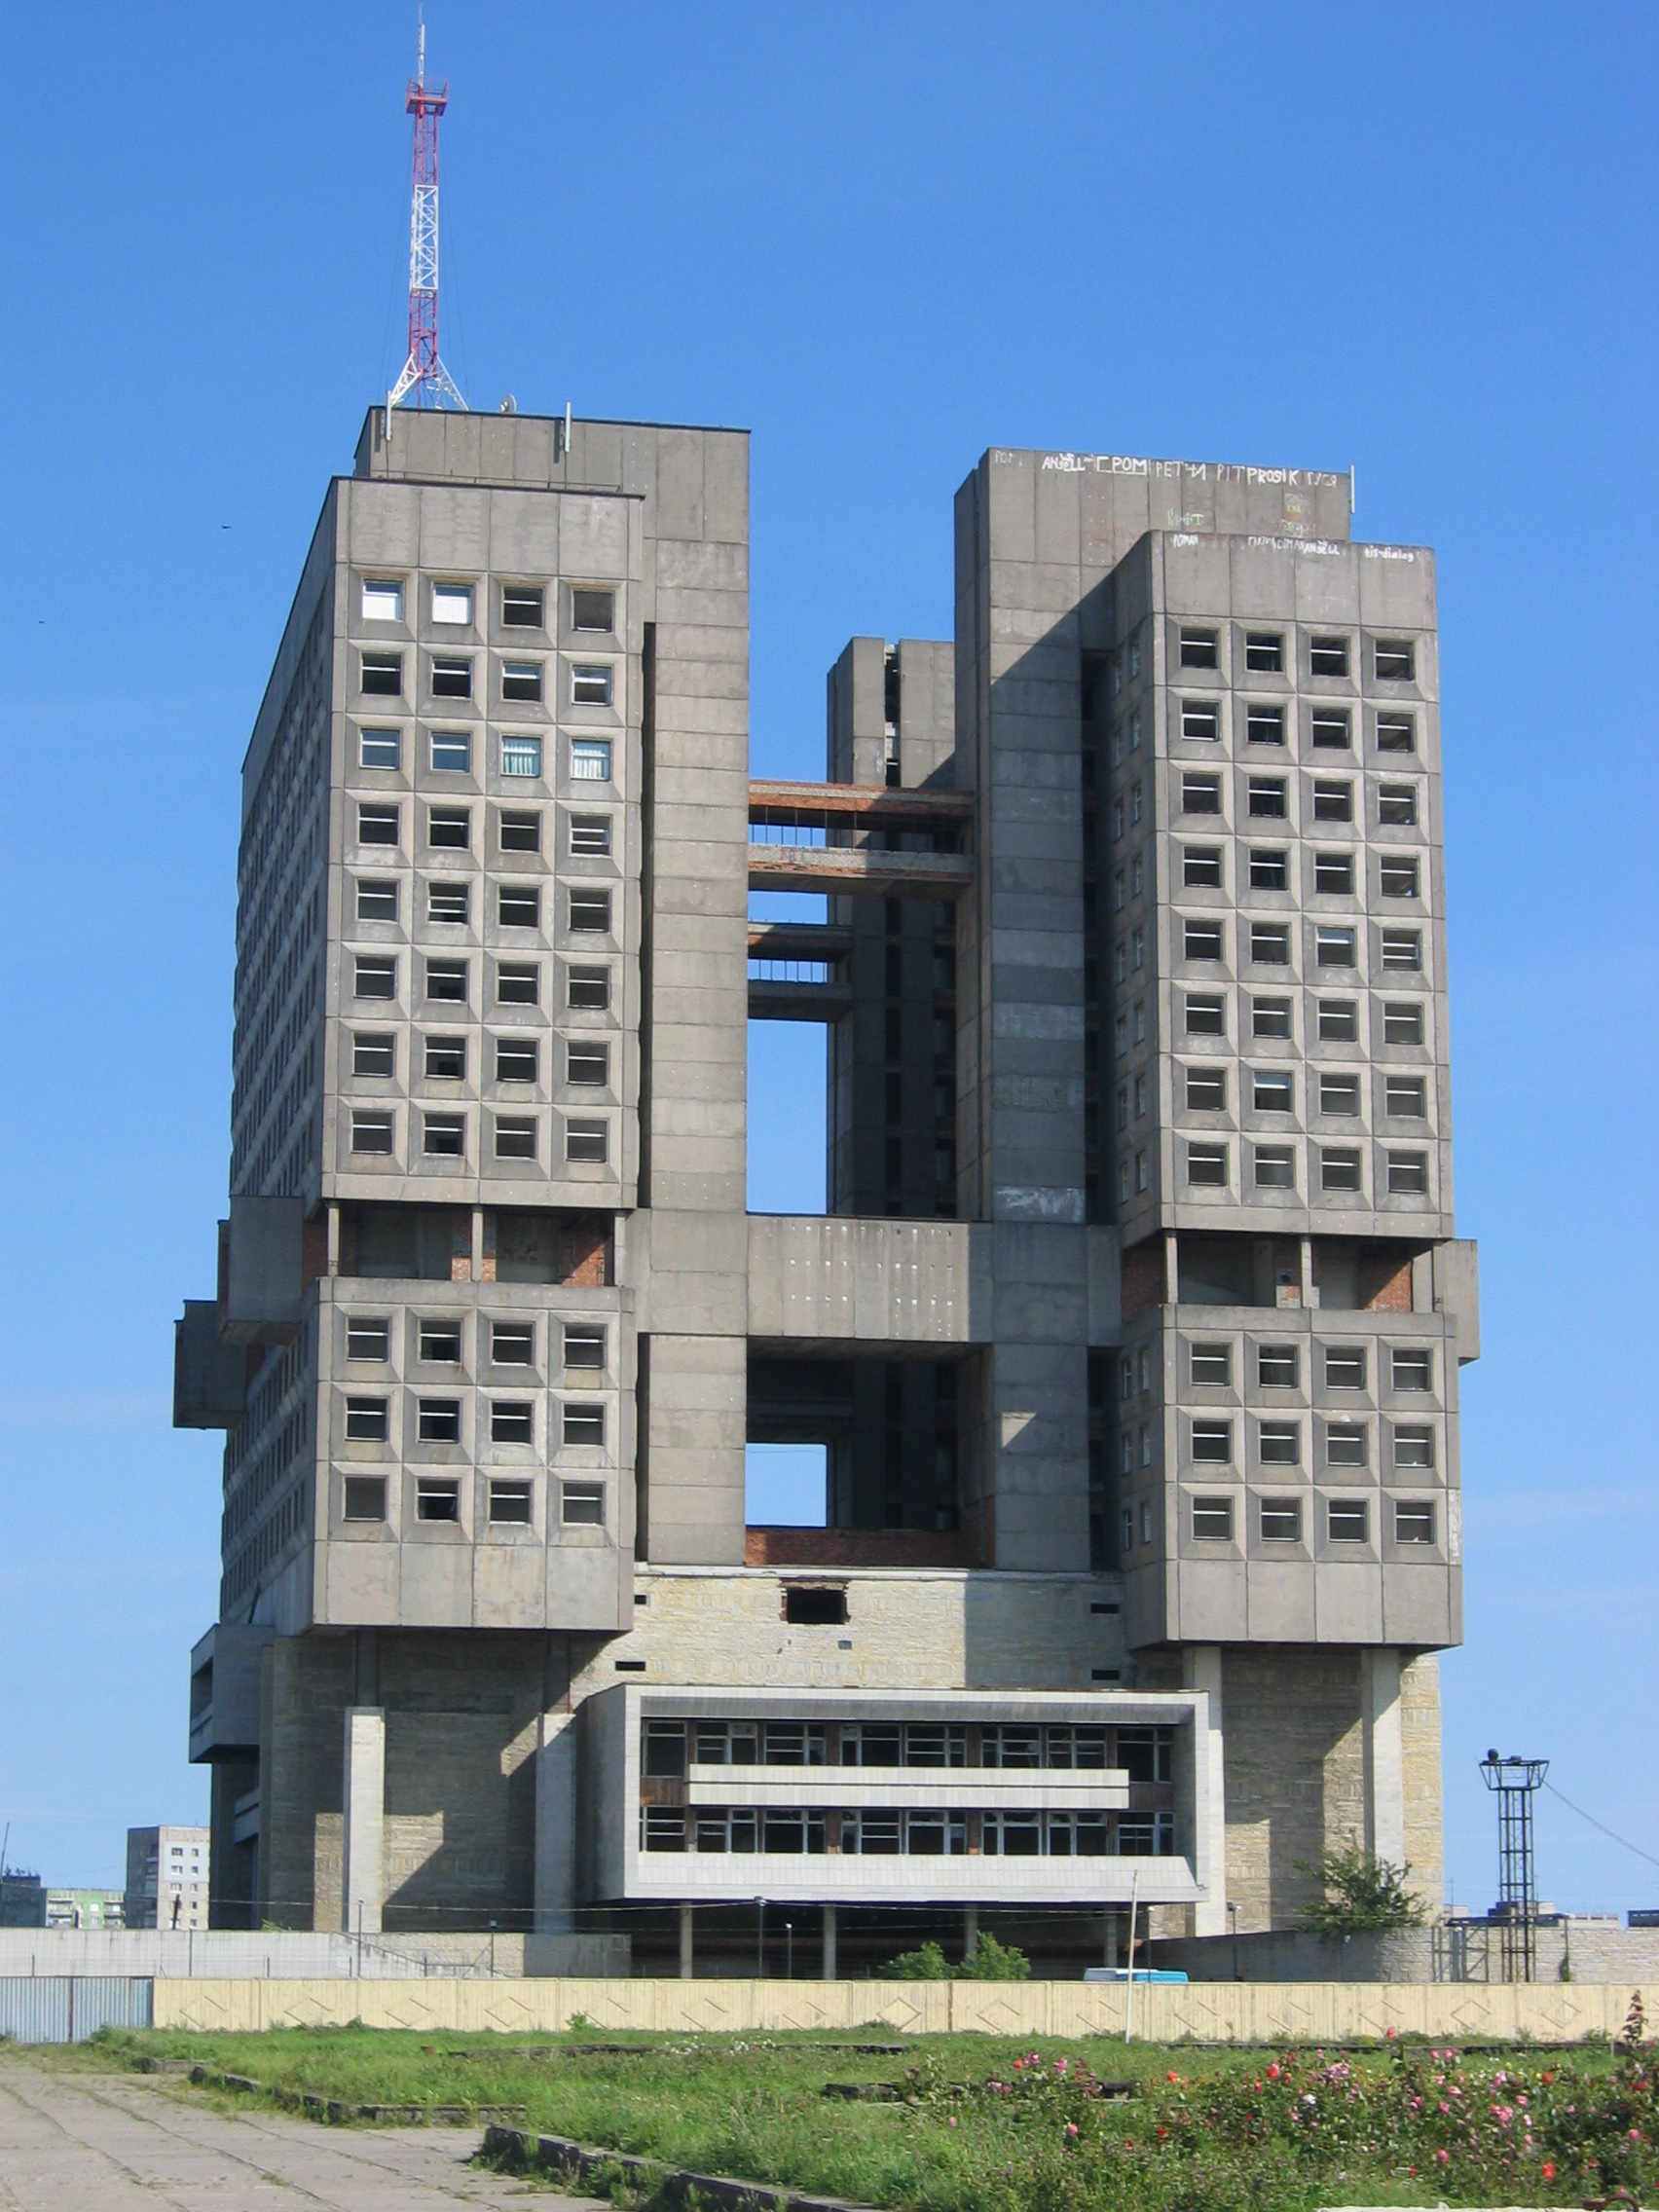 Image Unfinished Government Building From The 60s 70s